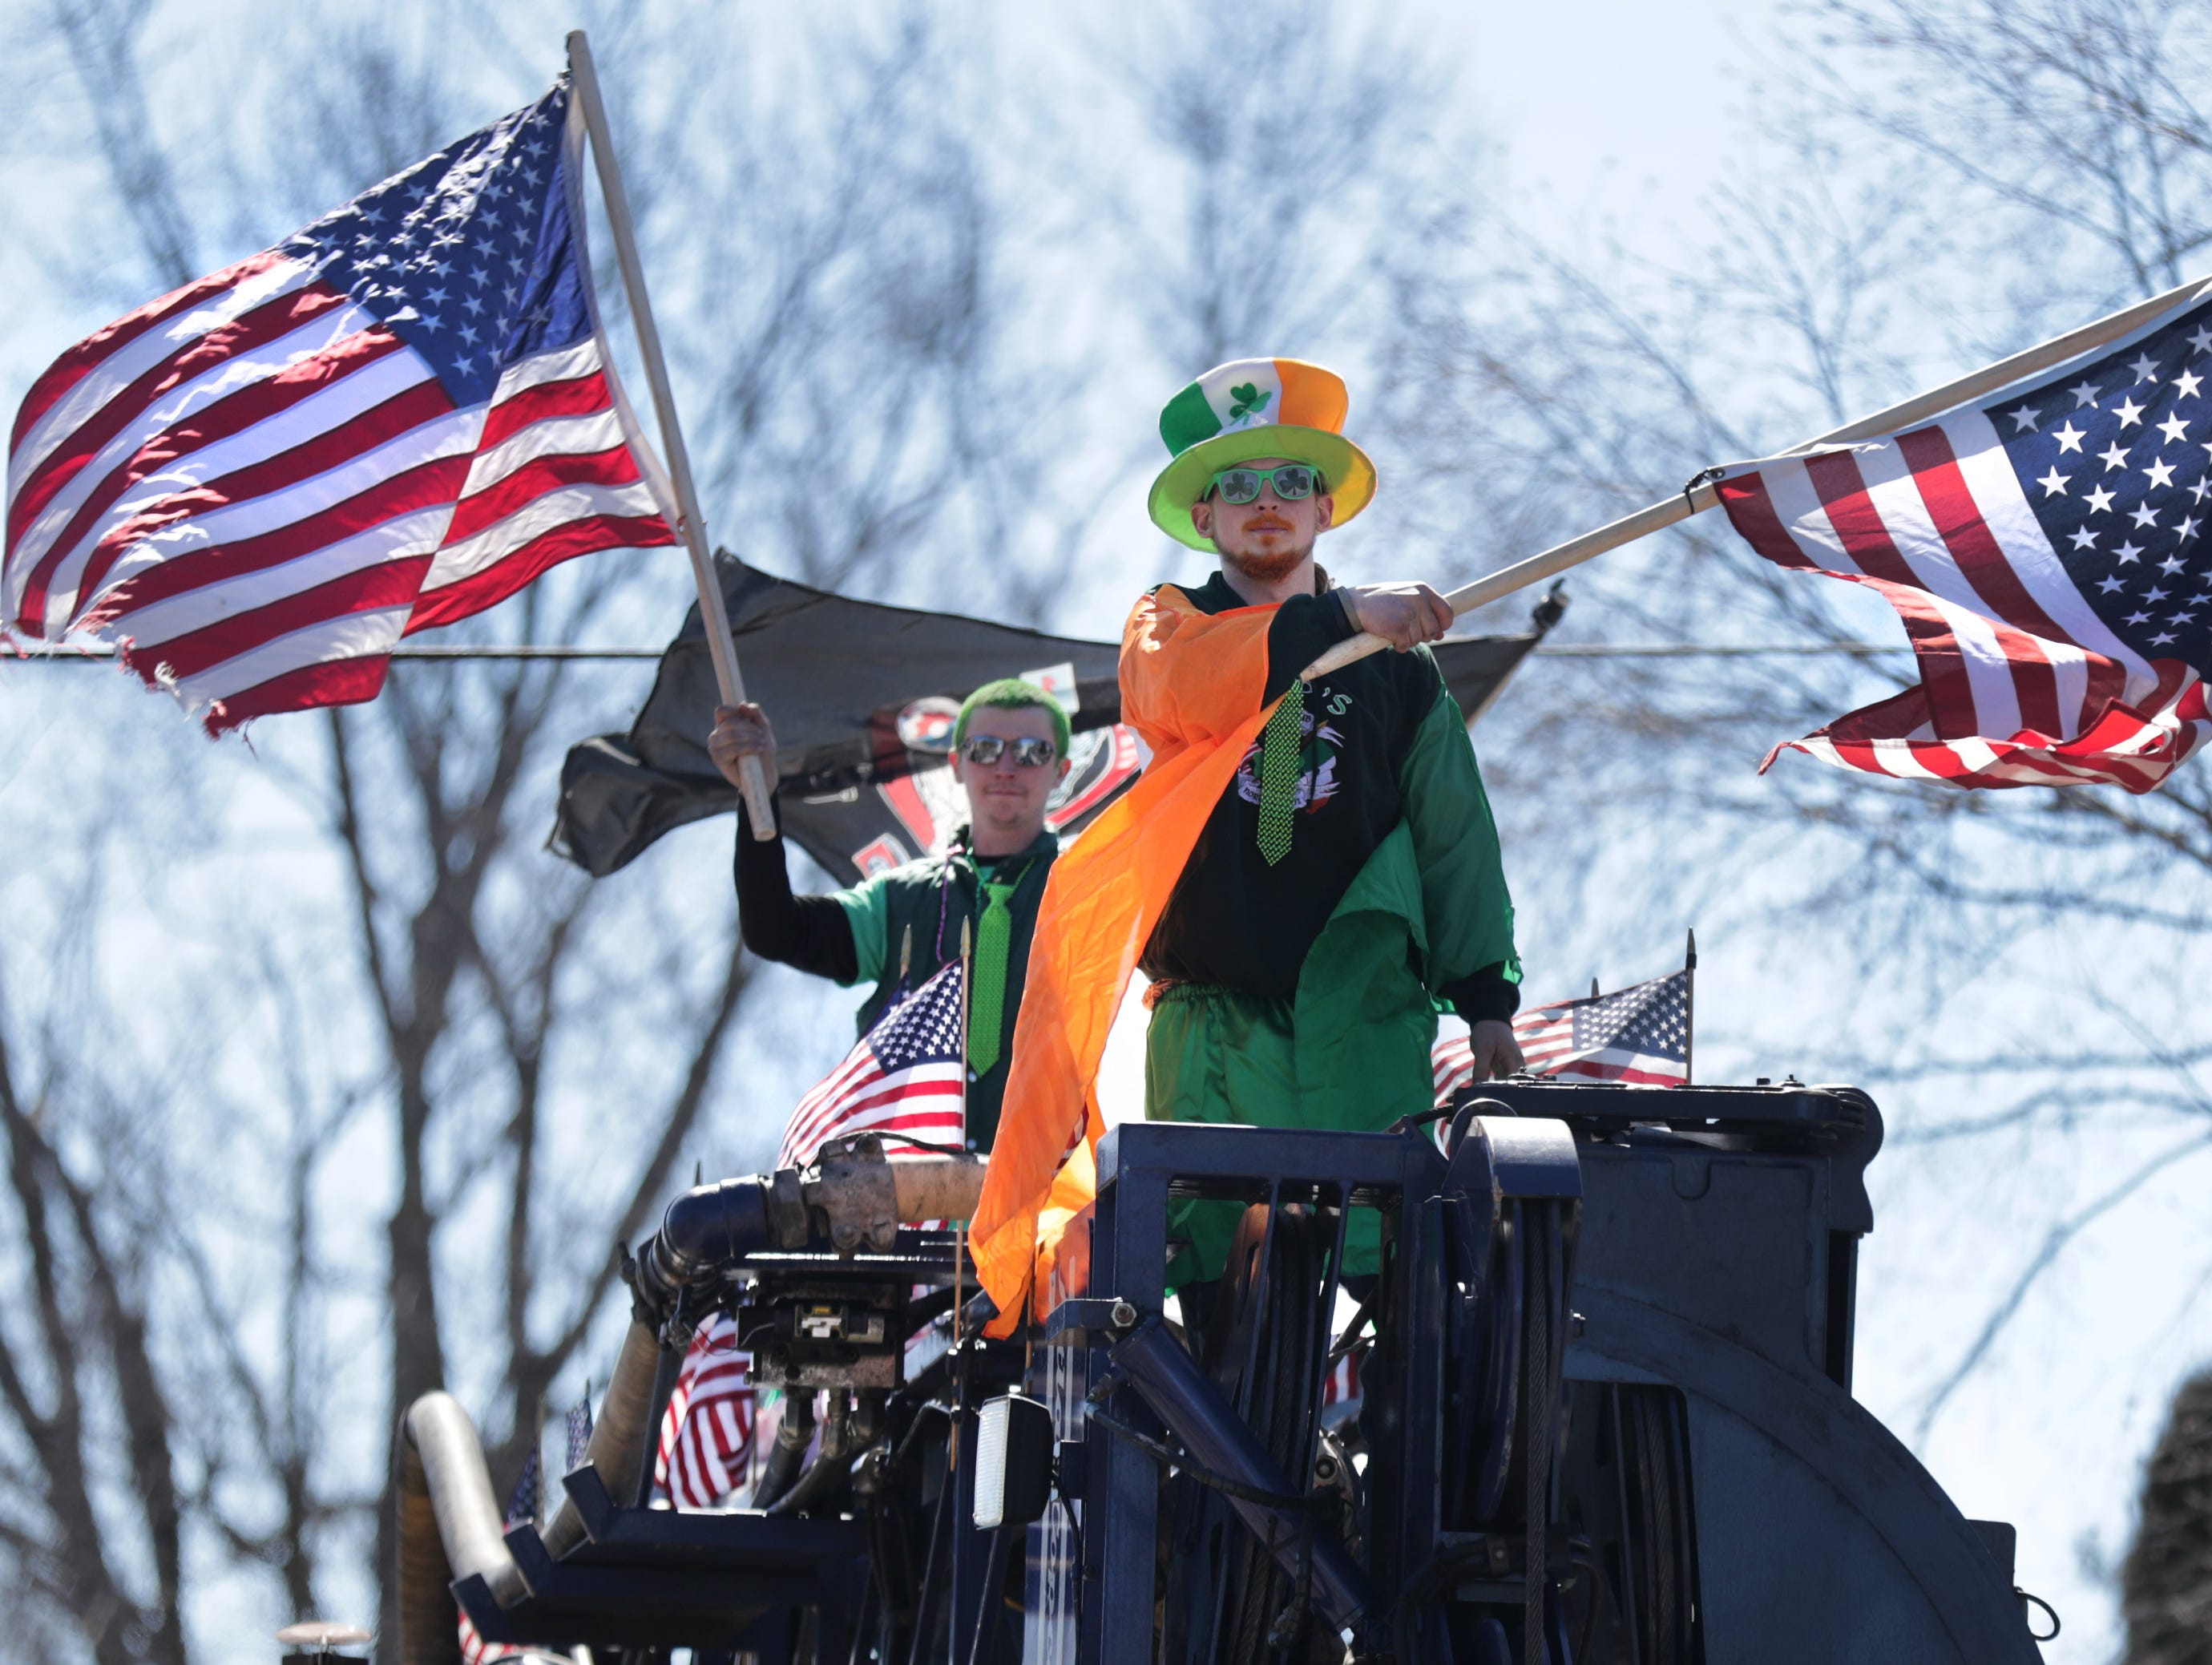 JW Hinske, front, and Houston Schroeder during the New Dublin St. Patrick's Day Grand Parade on Saturday, March 23, 2019, in New London, Wis.Wm. Glasheen/USA TODAY NETWORK-Wisconsin.